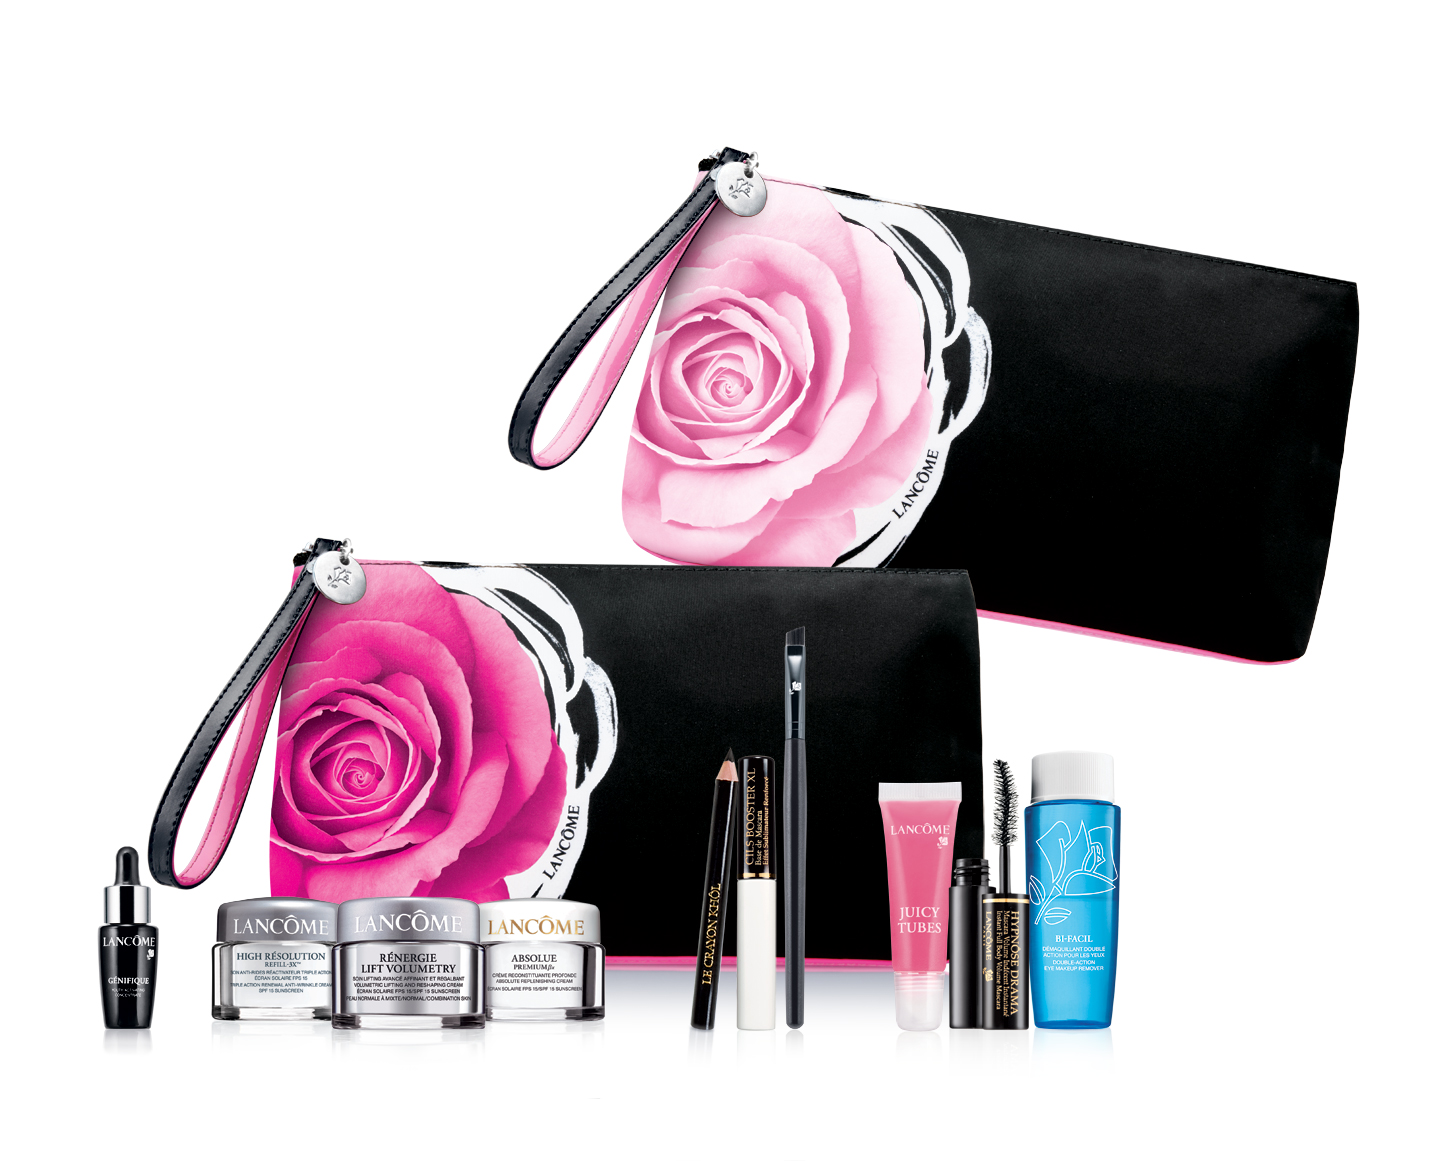 Giveaway Break - Lancome Gift with Purchase at Macy's